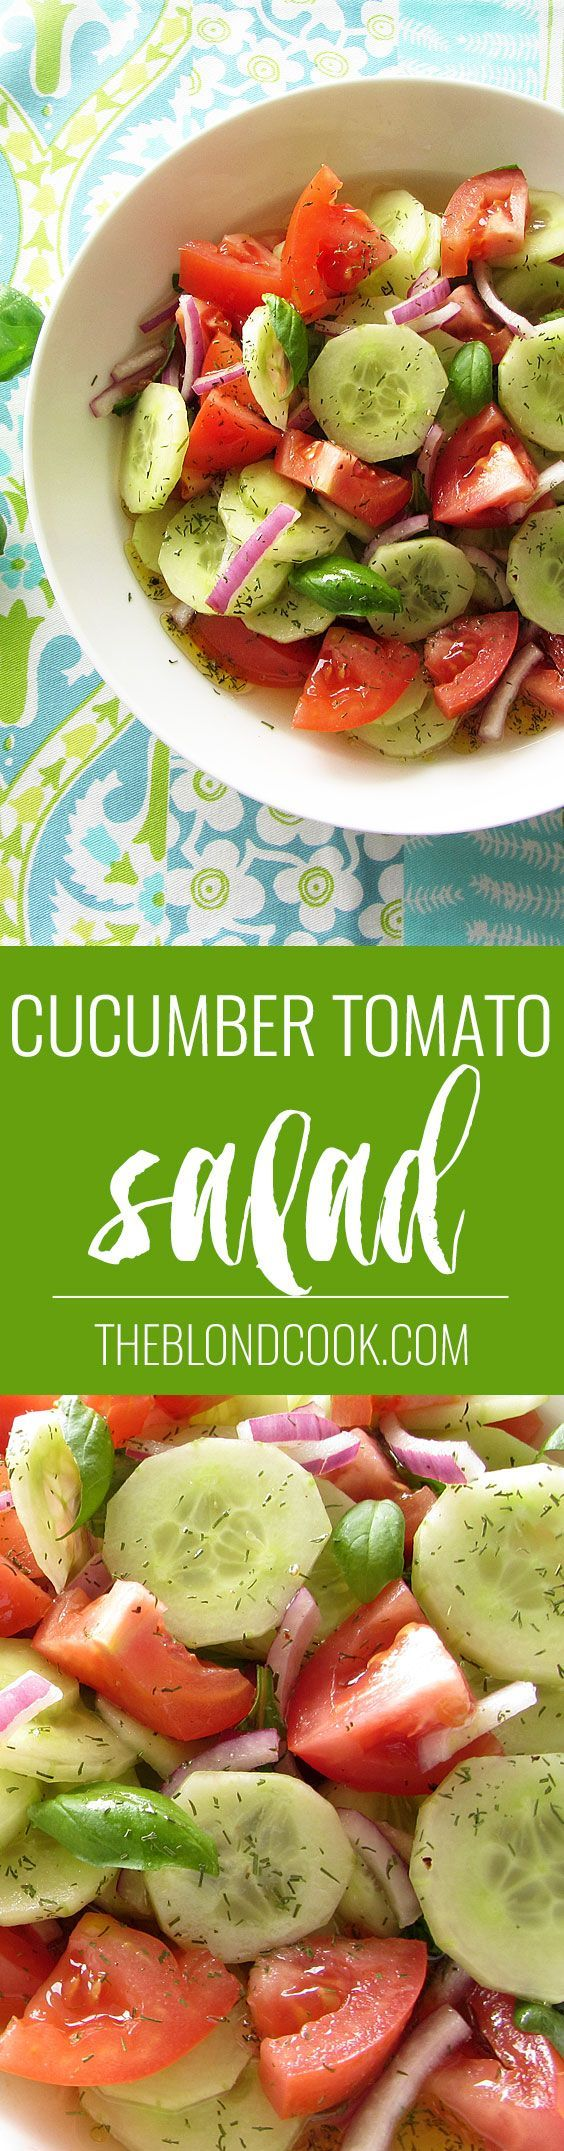 Cucumber Tomato Salad - A healthy salad with a homemade vinaigrette | theblondcook.com: